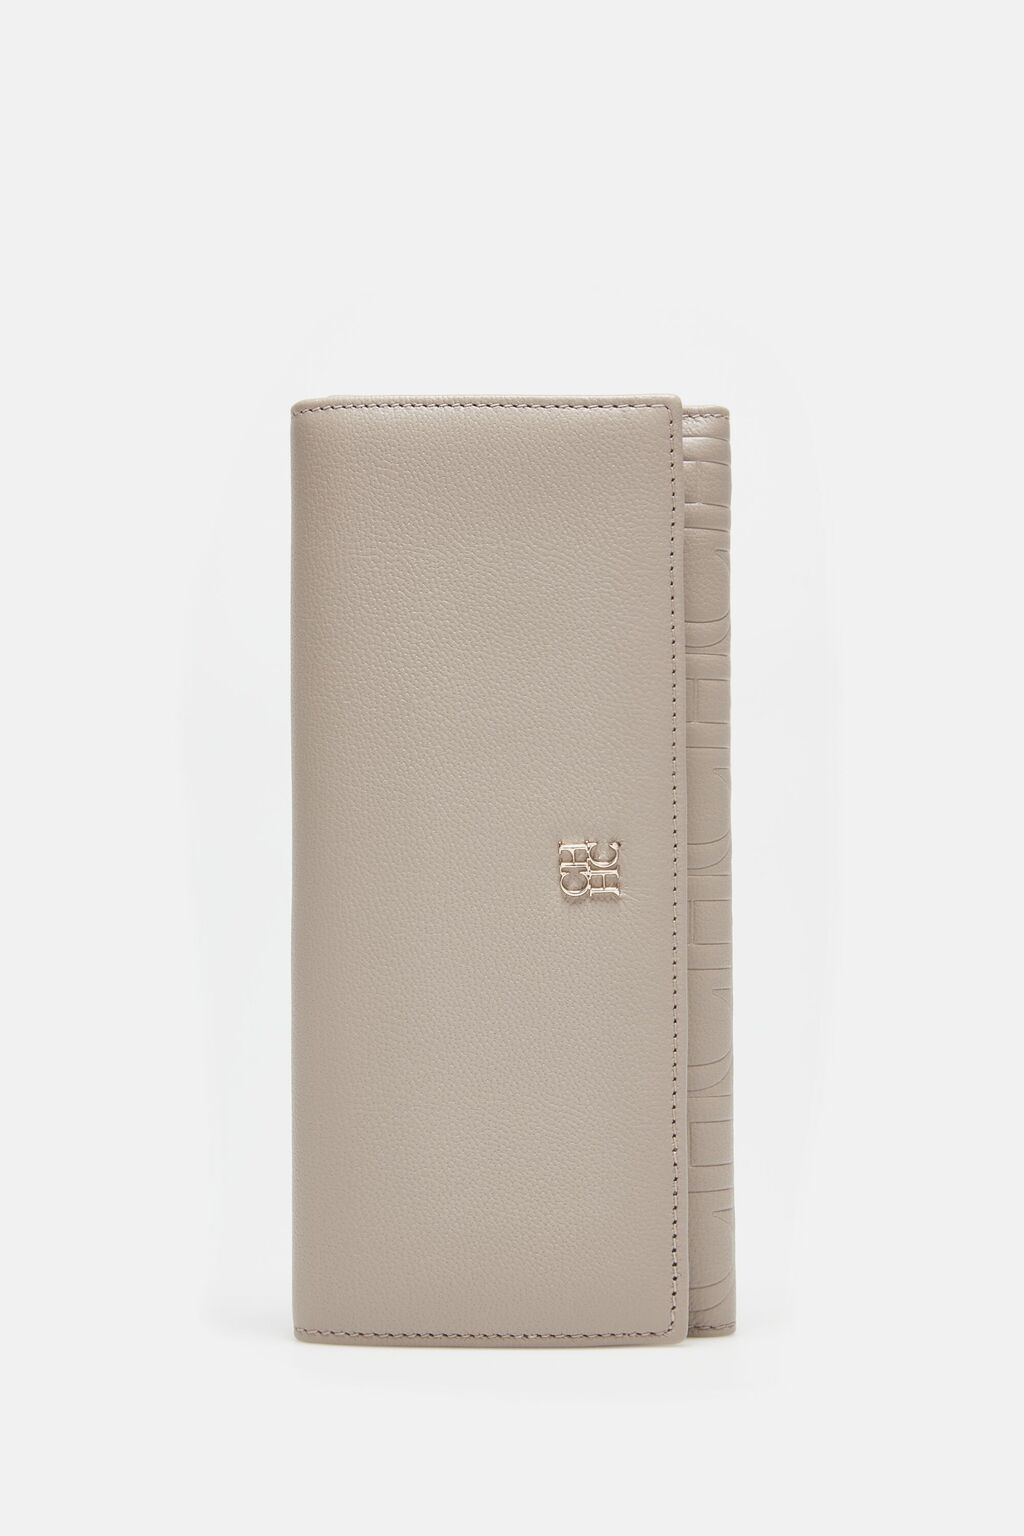 Editors | American wallet with removable coin purse